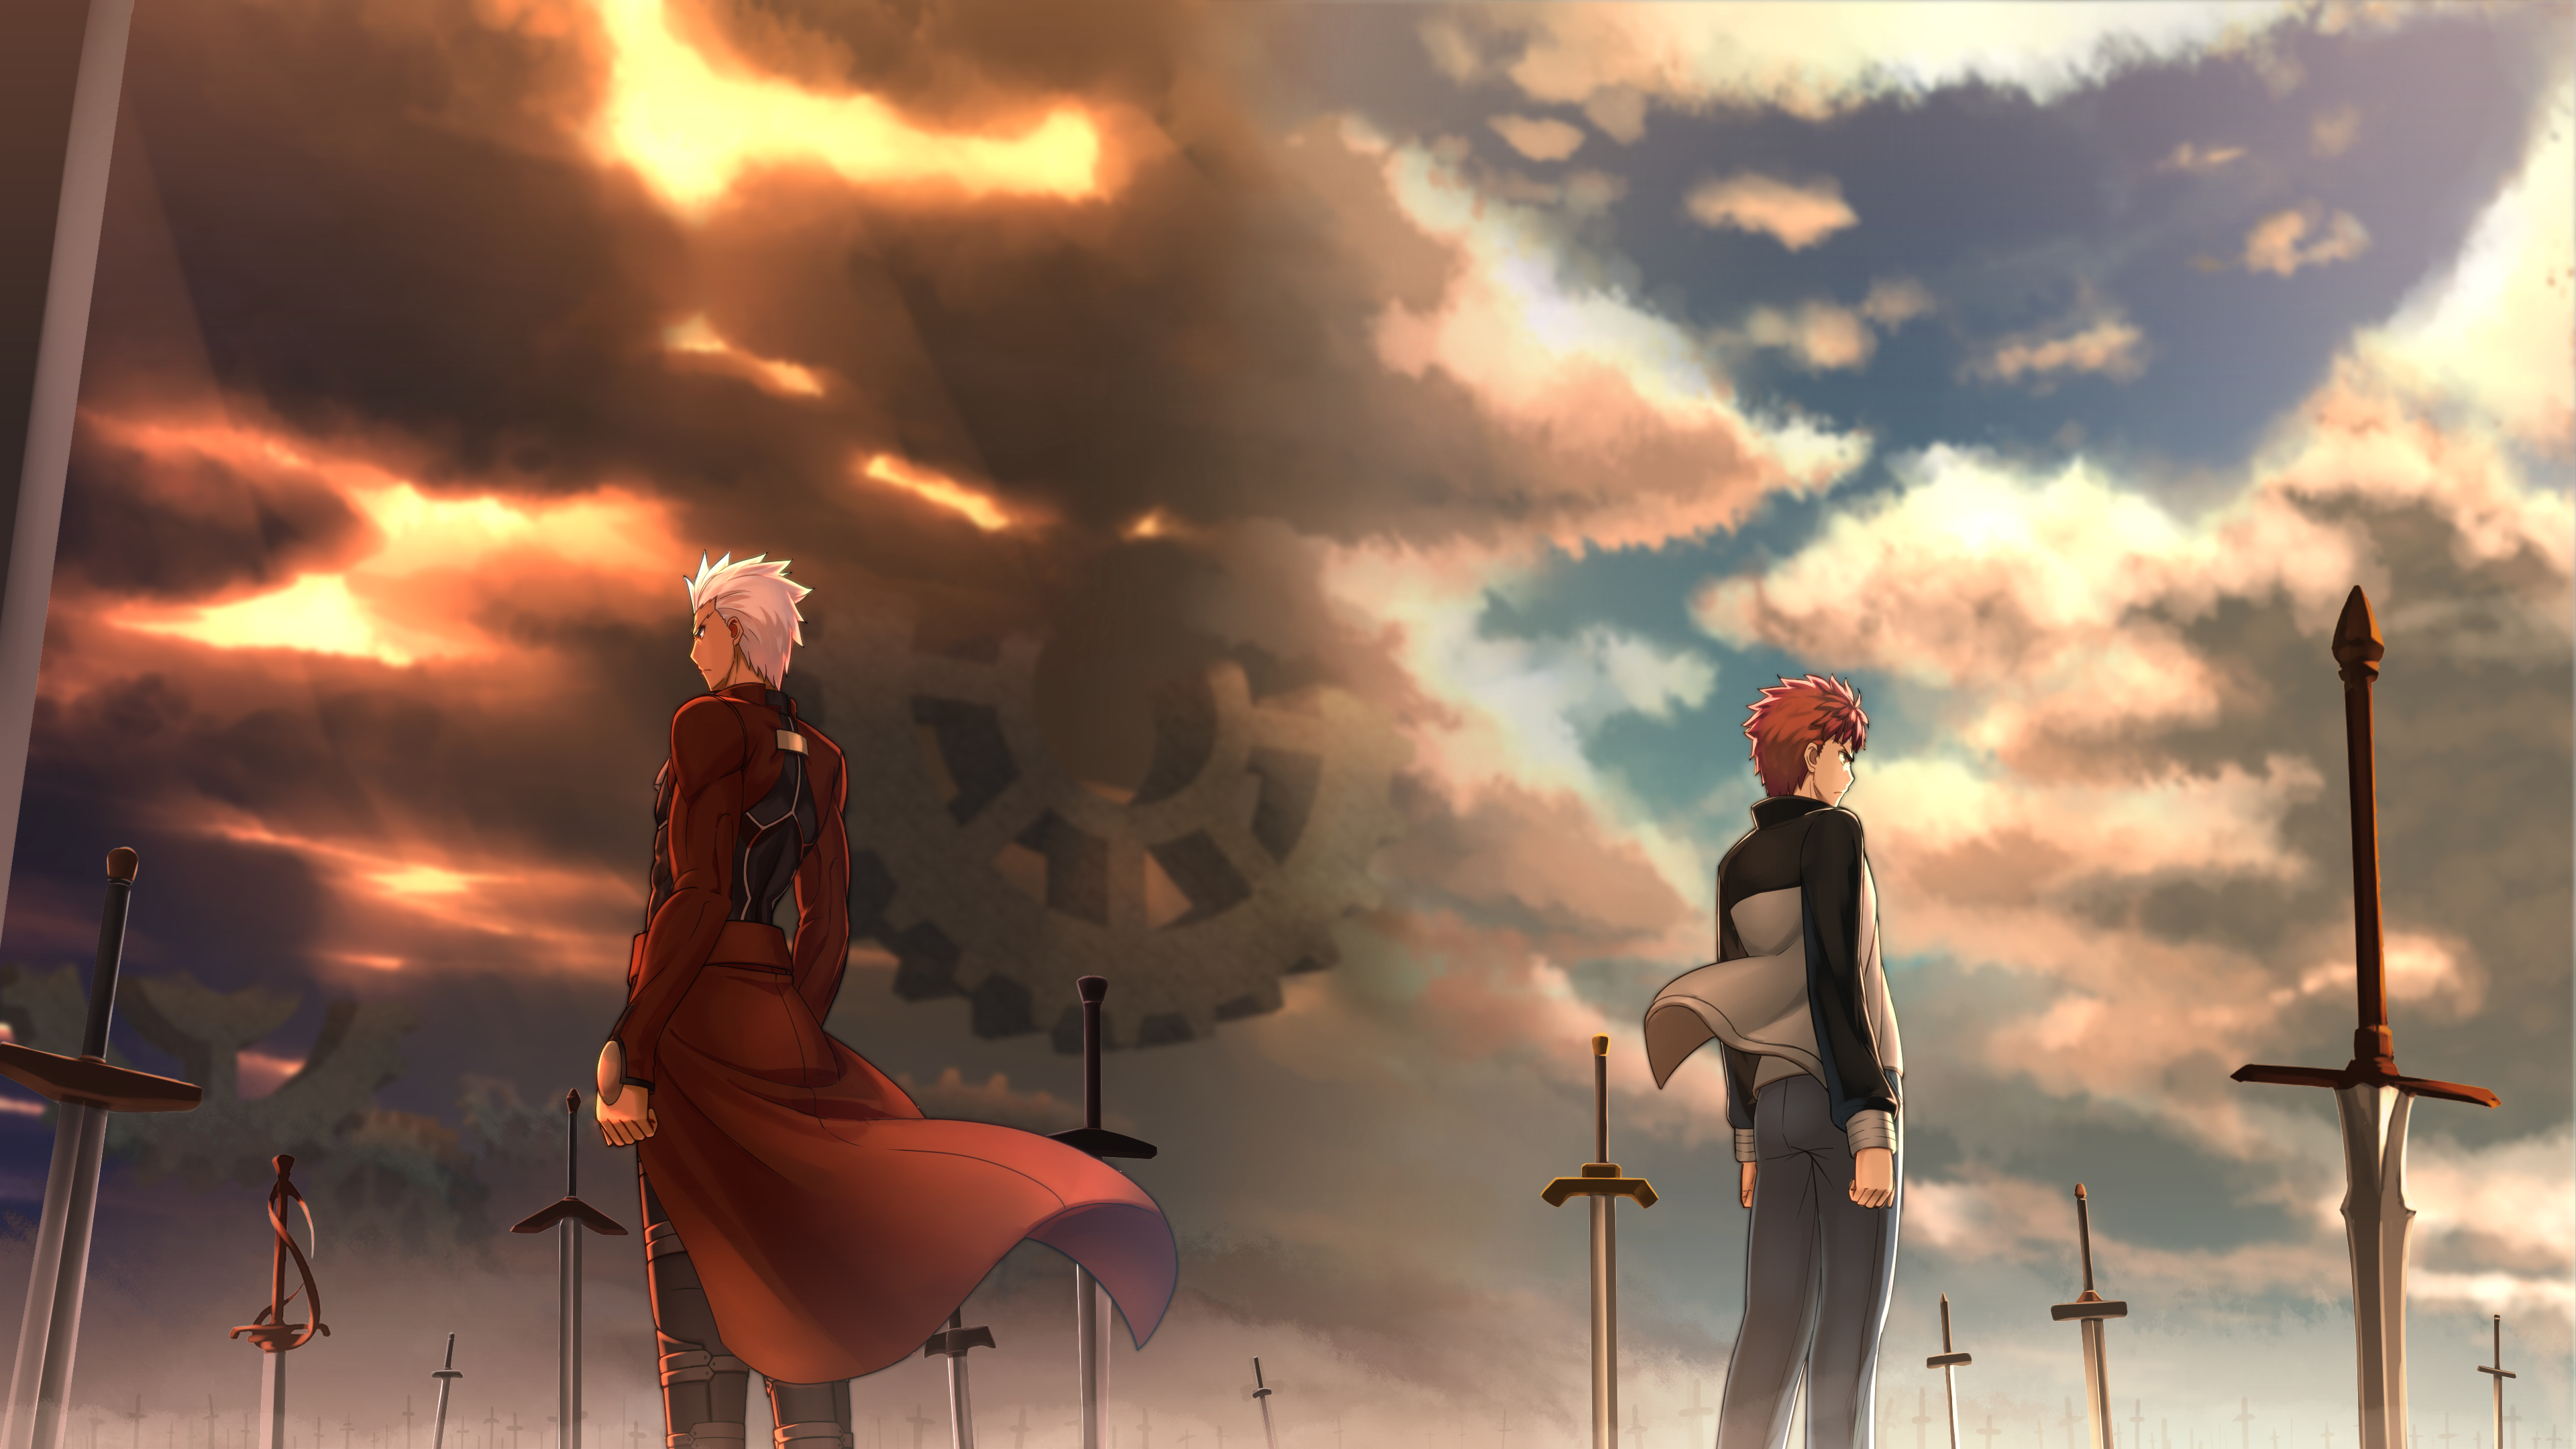 Awesome Wallpaper Archer Shirou Fatestaynight